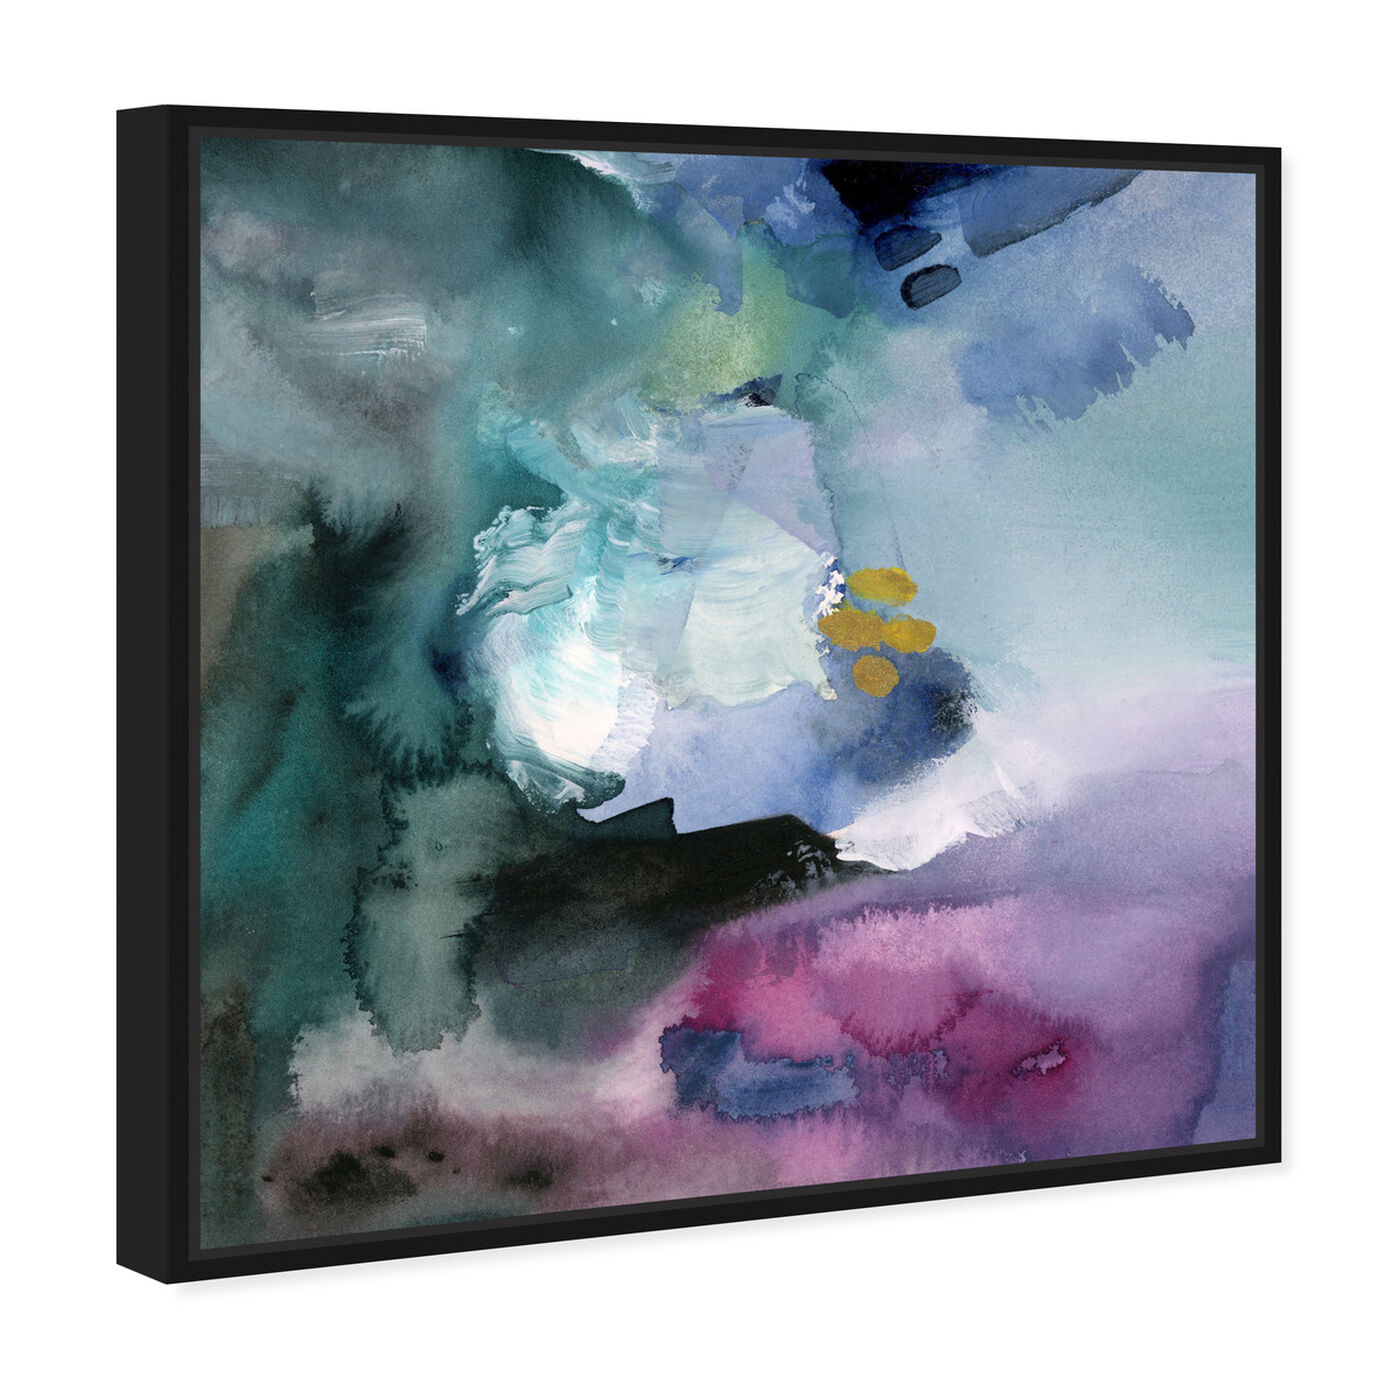 Angled view of Nebulosa Abstract featuring abstract and watercolor art.